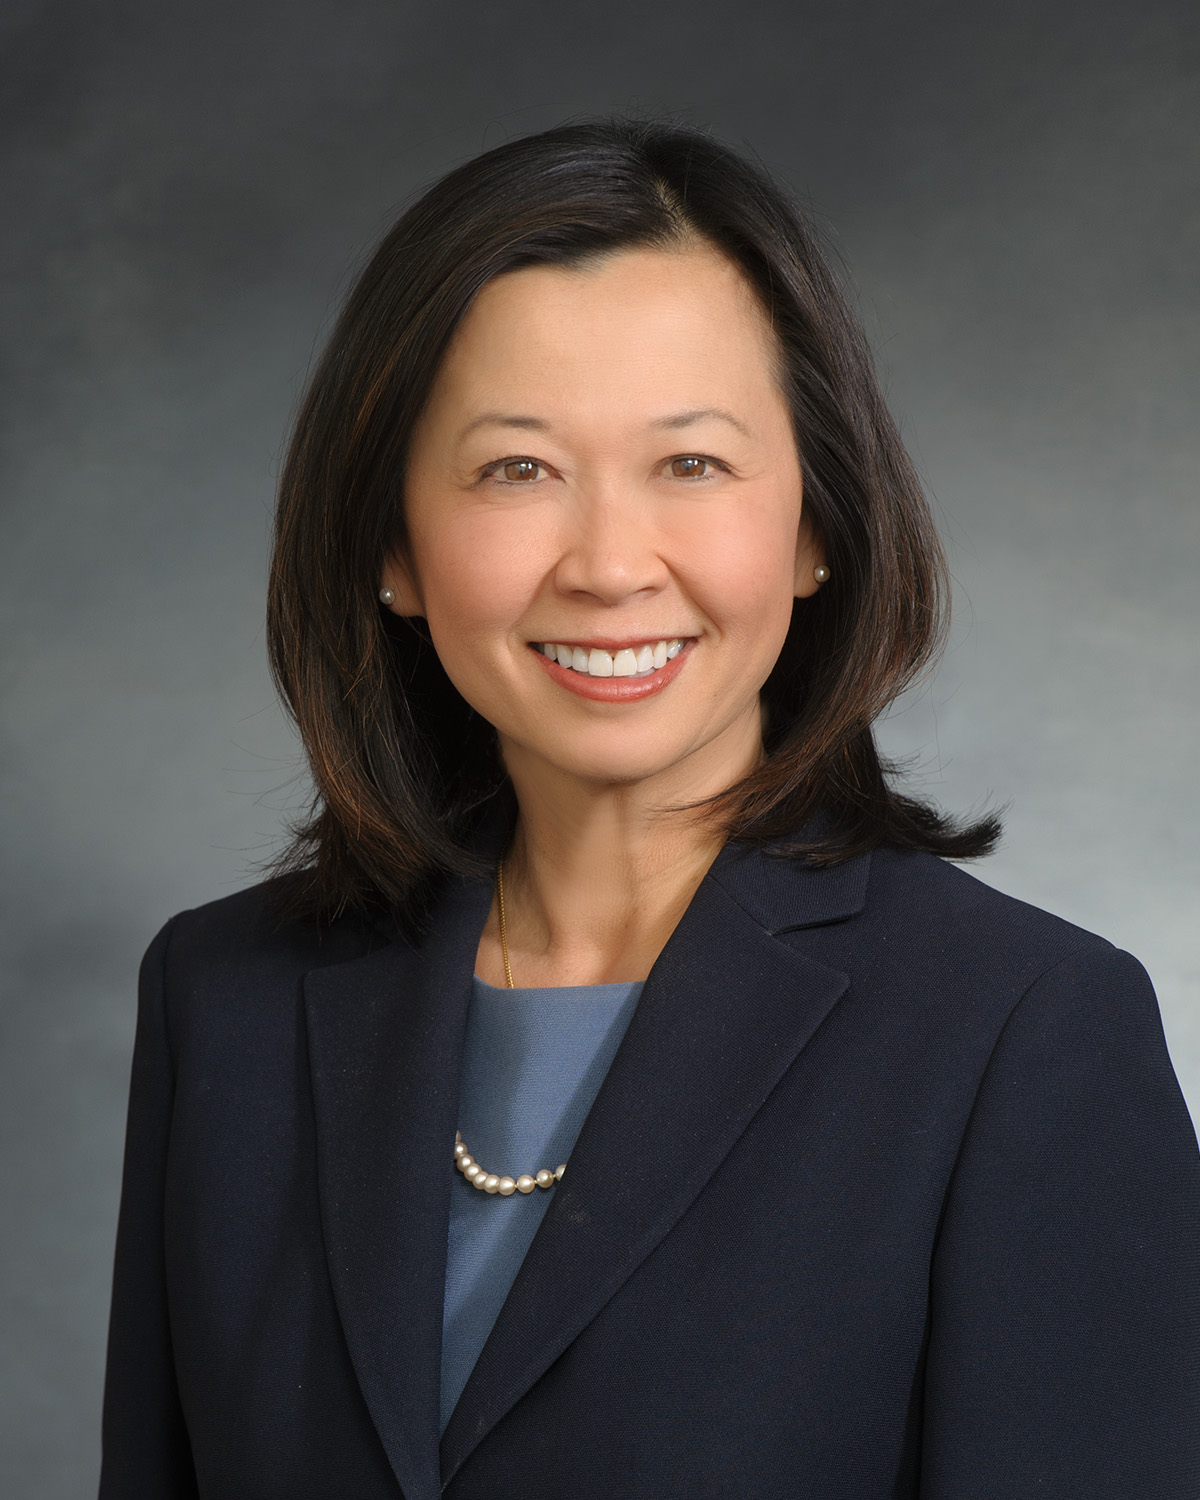 Ting L. Sun will be the Special Guest Speaker at the 2019 Leadership Update Conference